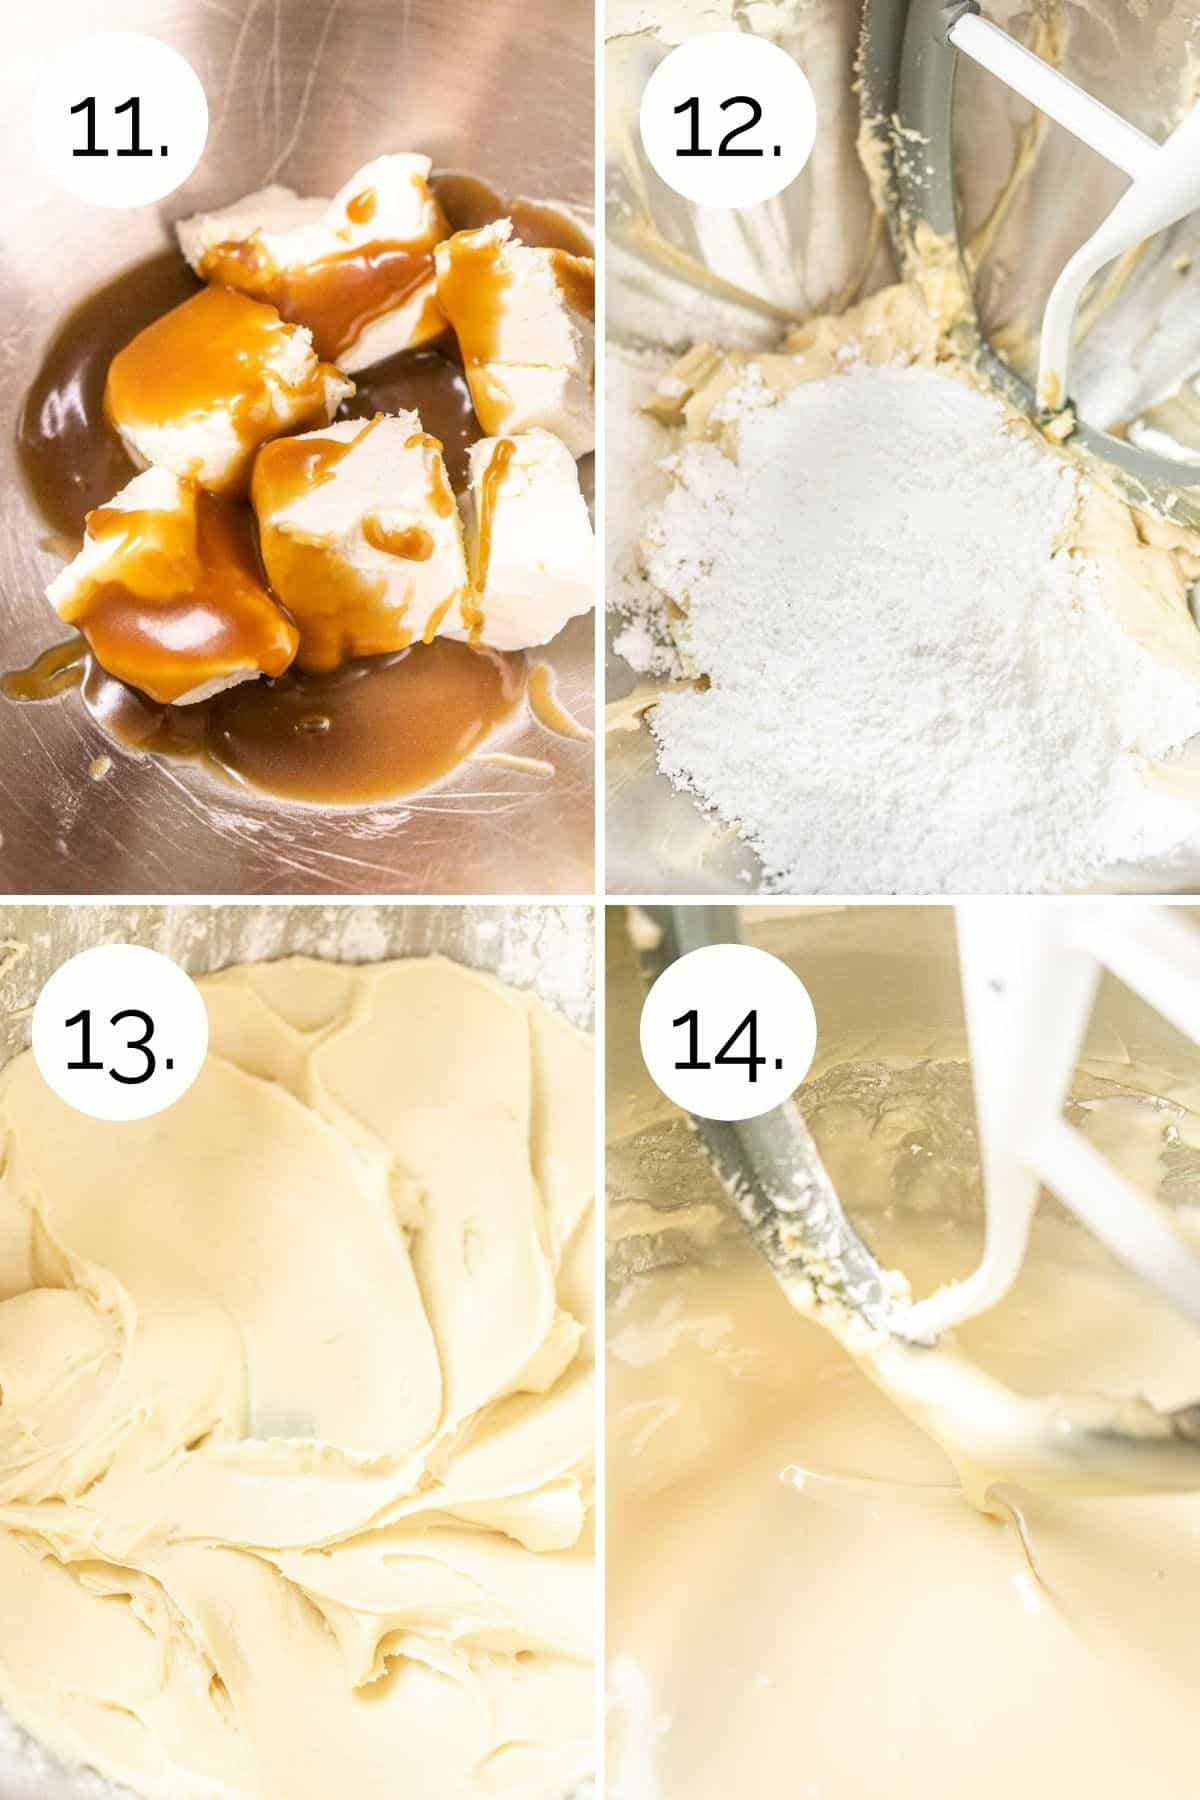 A collage showing how to make the caramel cream cheese glaze in a mixing bowl.